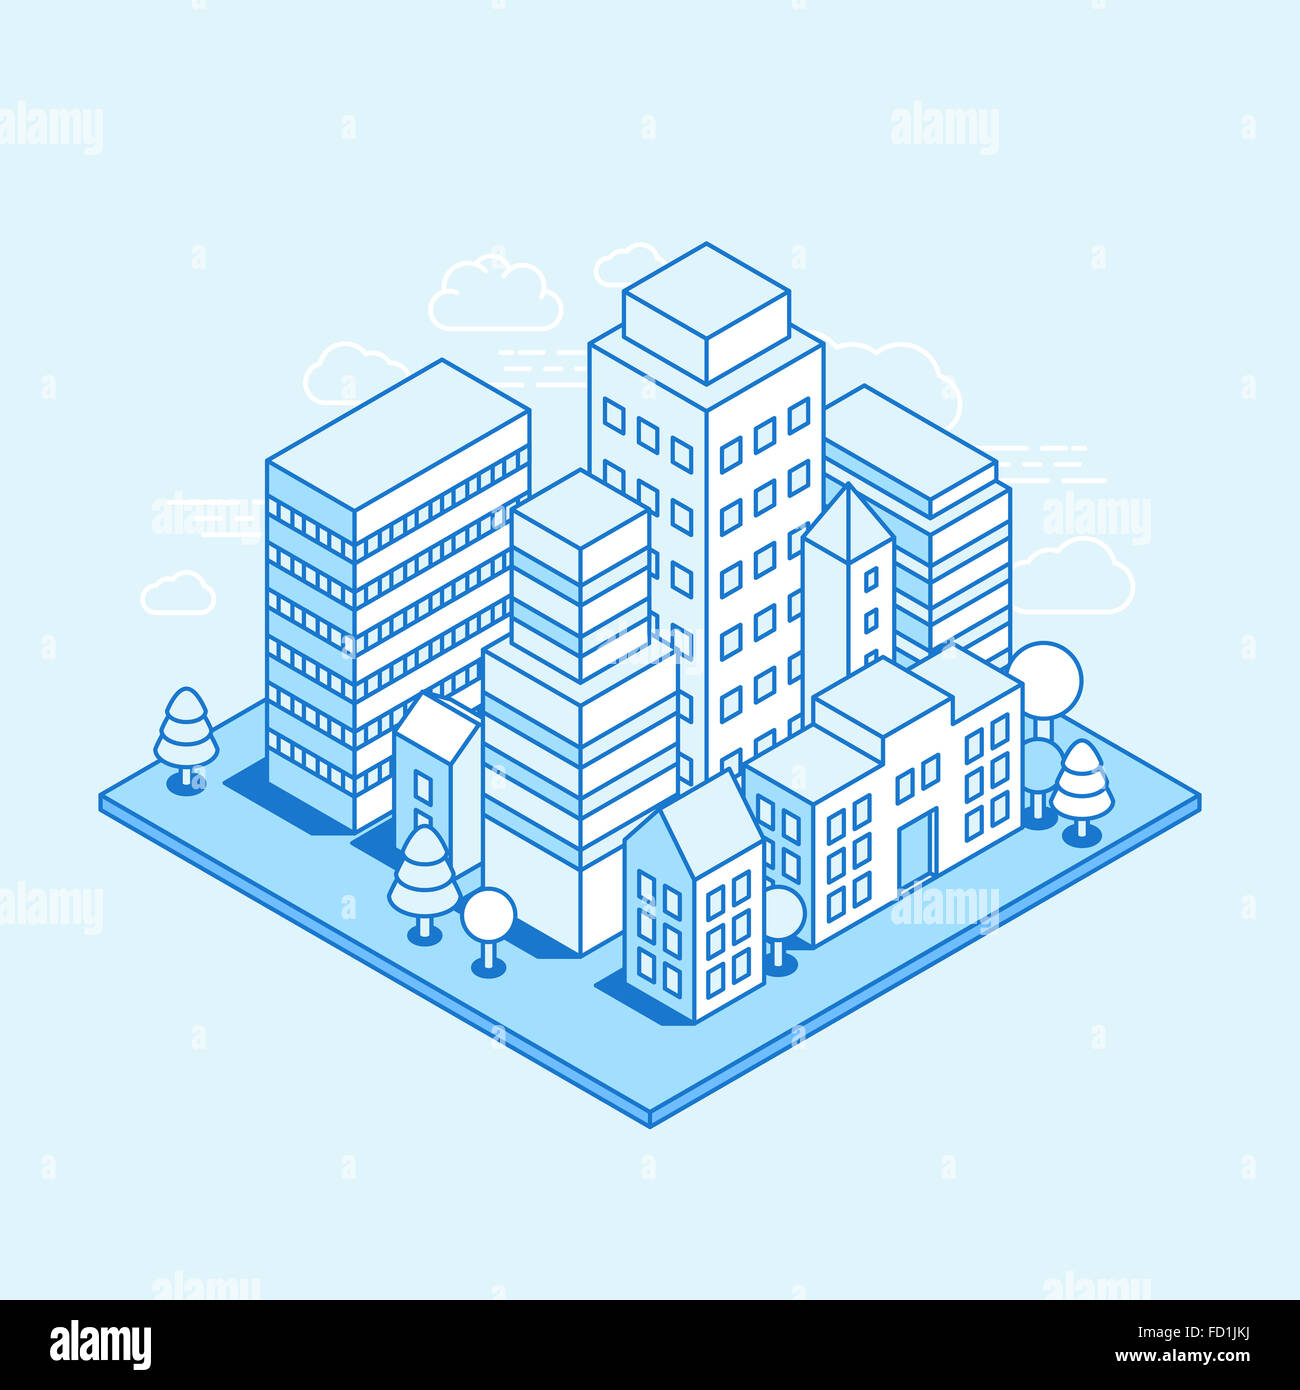 City landscape isometric illustration - business concept and banner in trendy linear style  on blue background - Stock Image